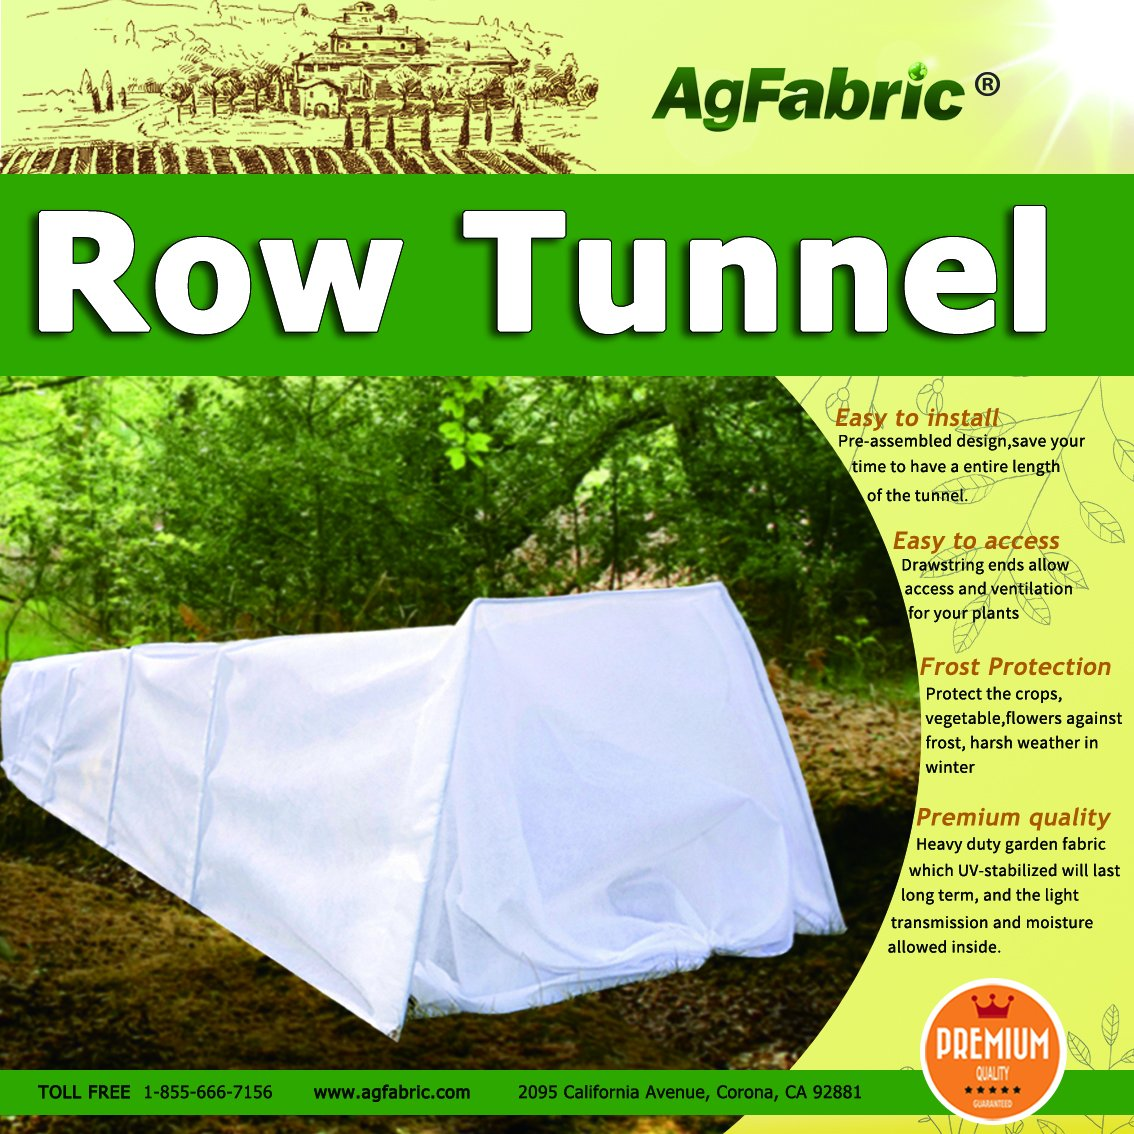 Mini Grow Tunnel 10' Long x 18'' High Quick Tunnel, Easy Nonwovens Tunnel Garden for Plants ,0.9oz Plant Row Cover With 6pcs Steel Hoops Guard Seed Germination & Frost Protection Cover